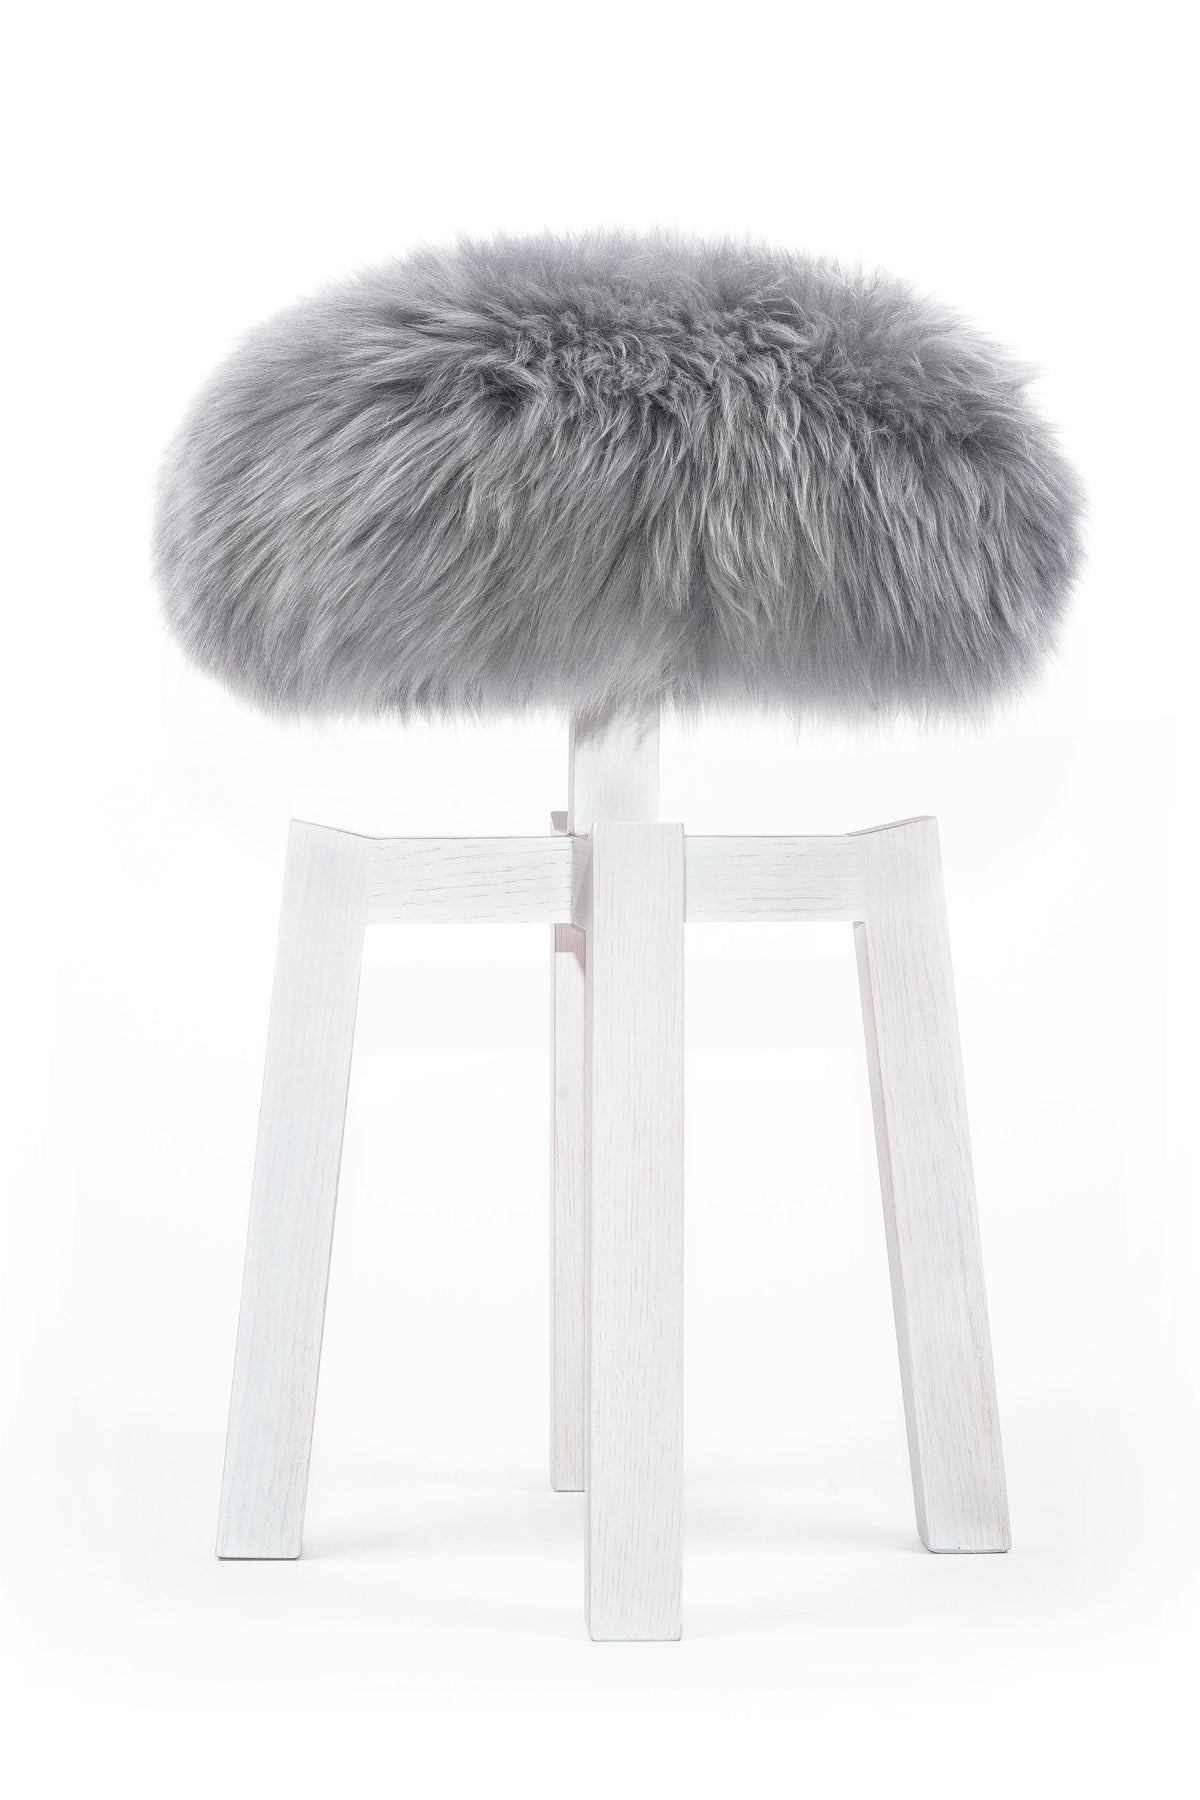 Lamb Stool, Silver Grey with White Legs